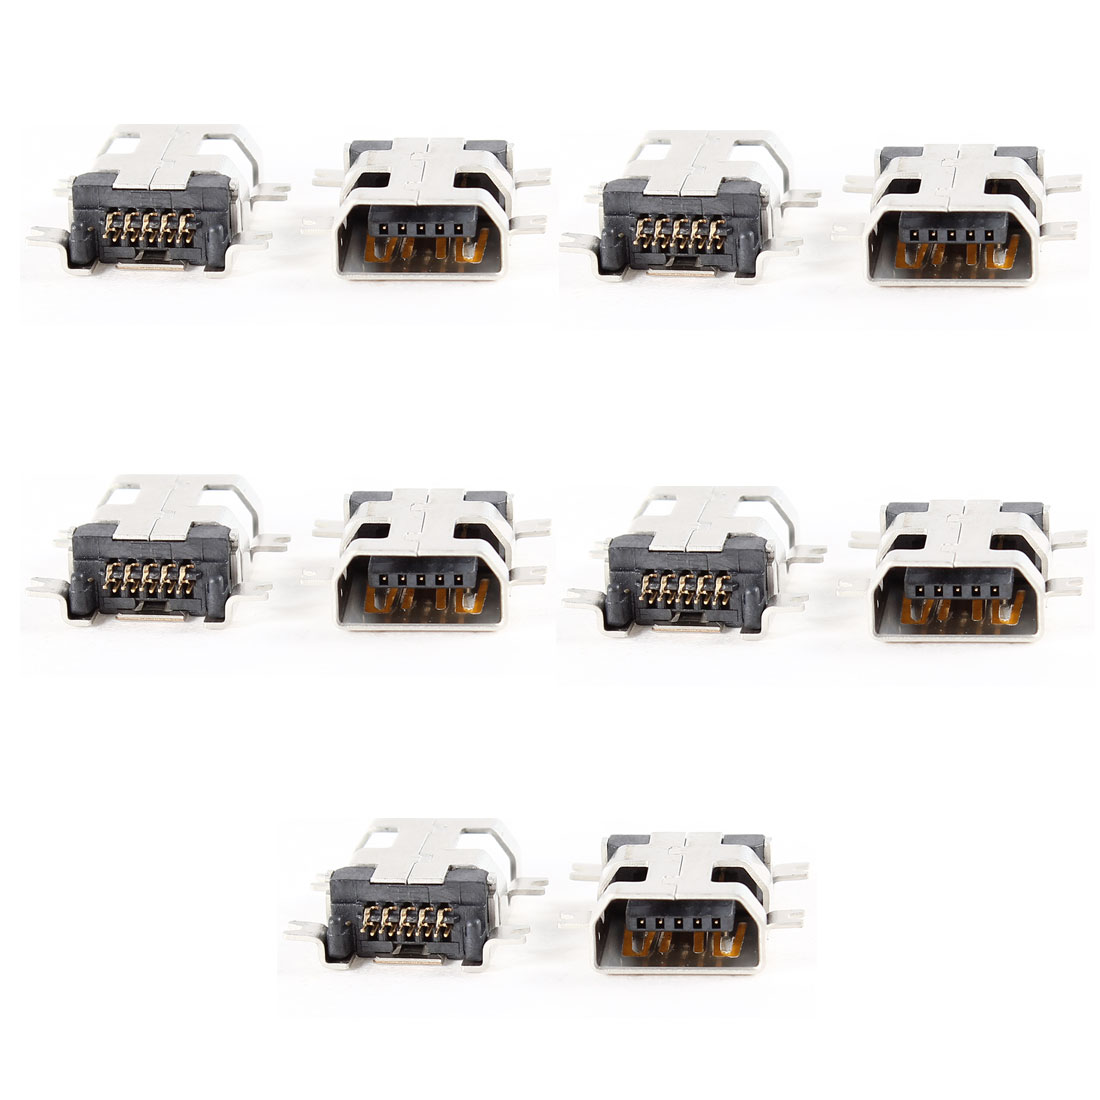 Micro Female USB Type B 10 Pin SMT PCB Board Mount Jack Charger Port 10 Pcs